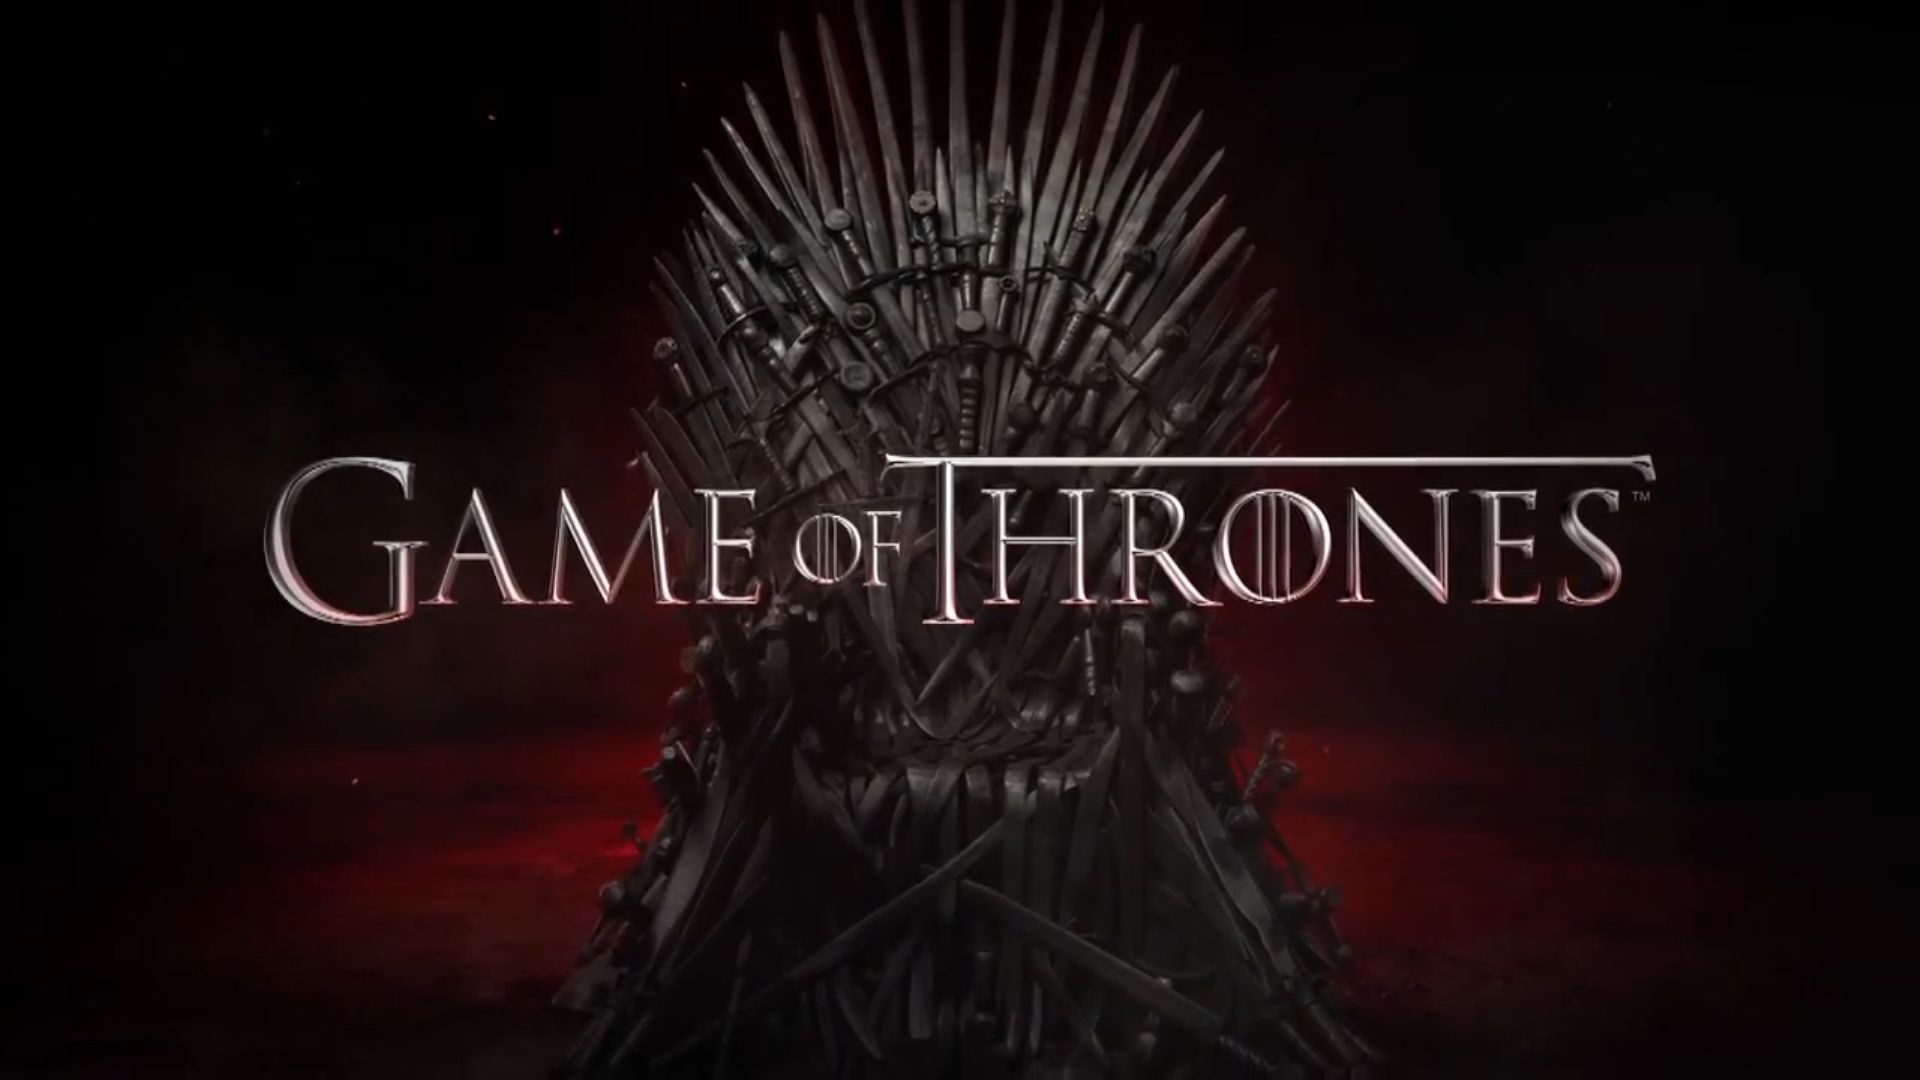 Sling TV will launch HBO in time for the 'Game of Thrones' season premiere